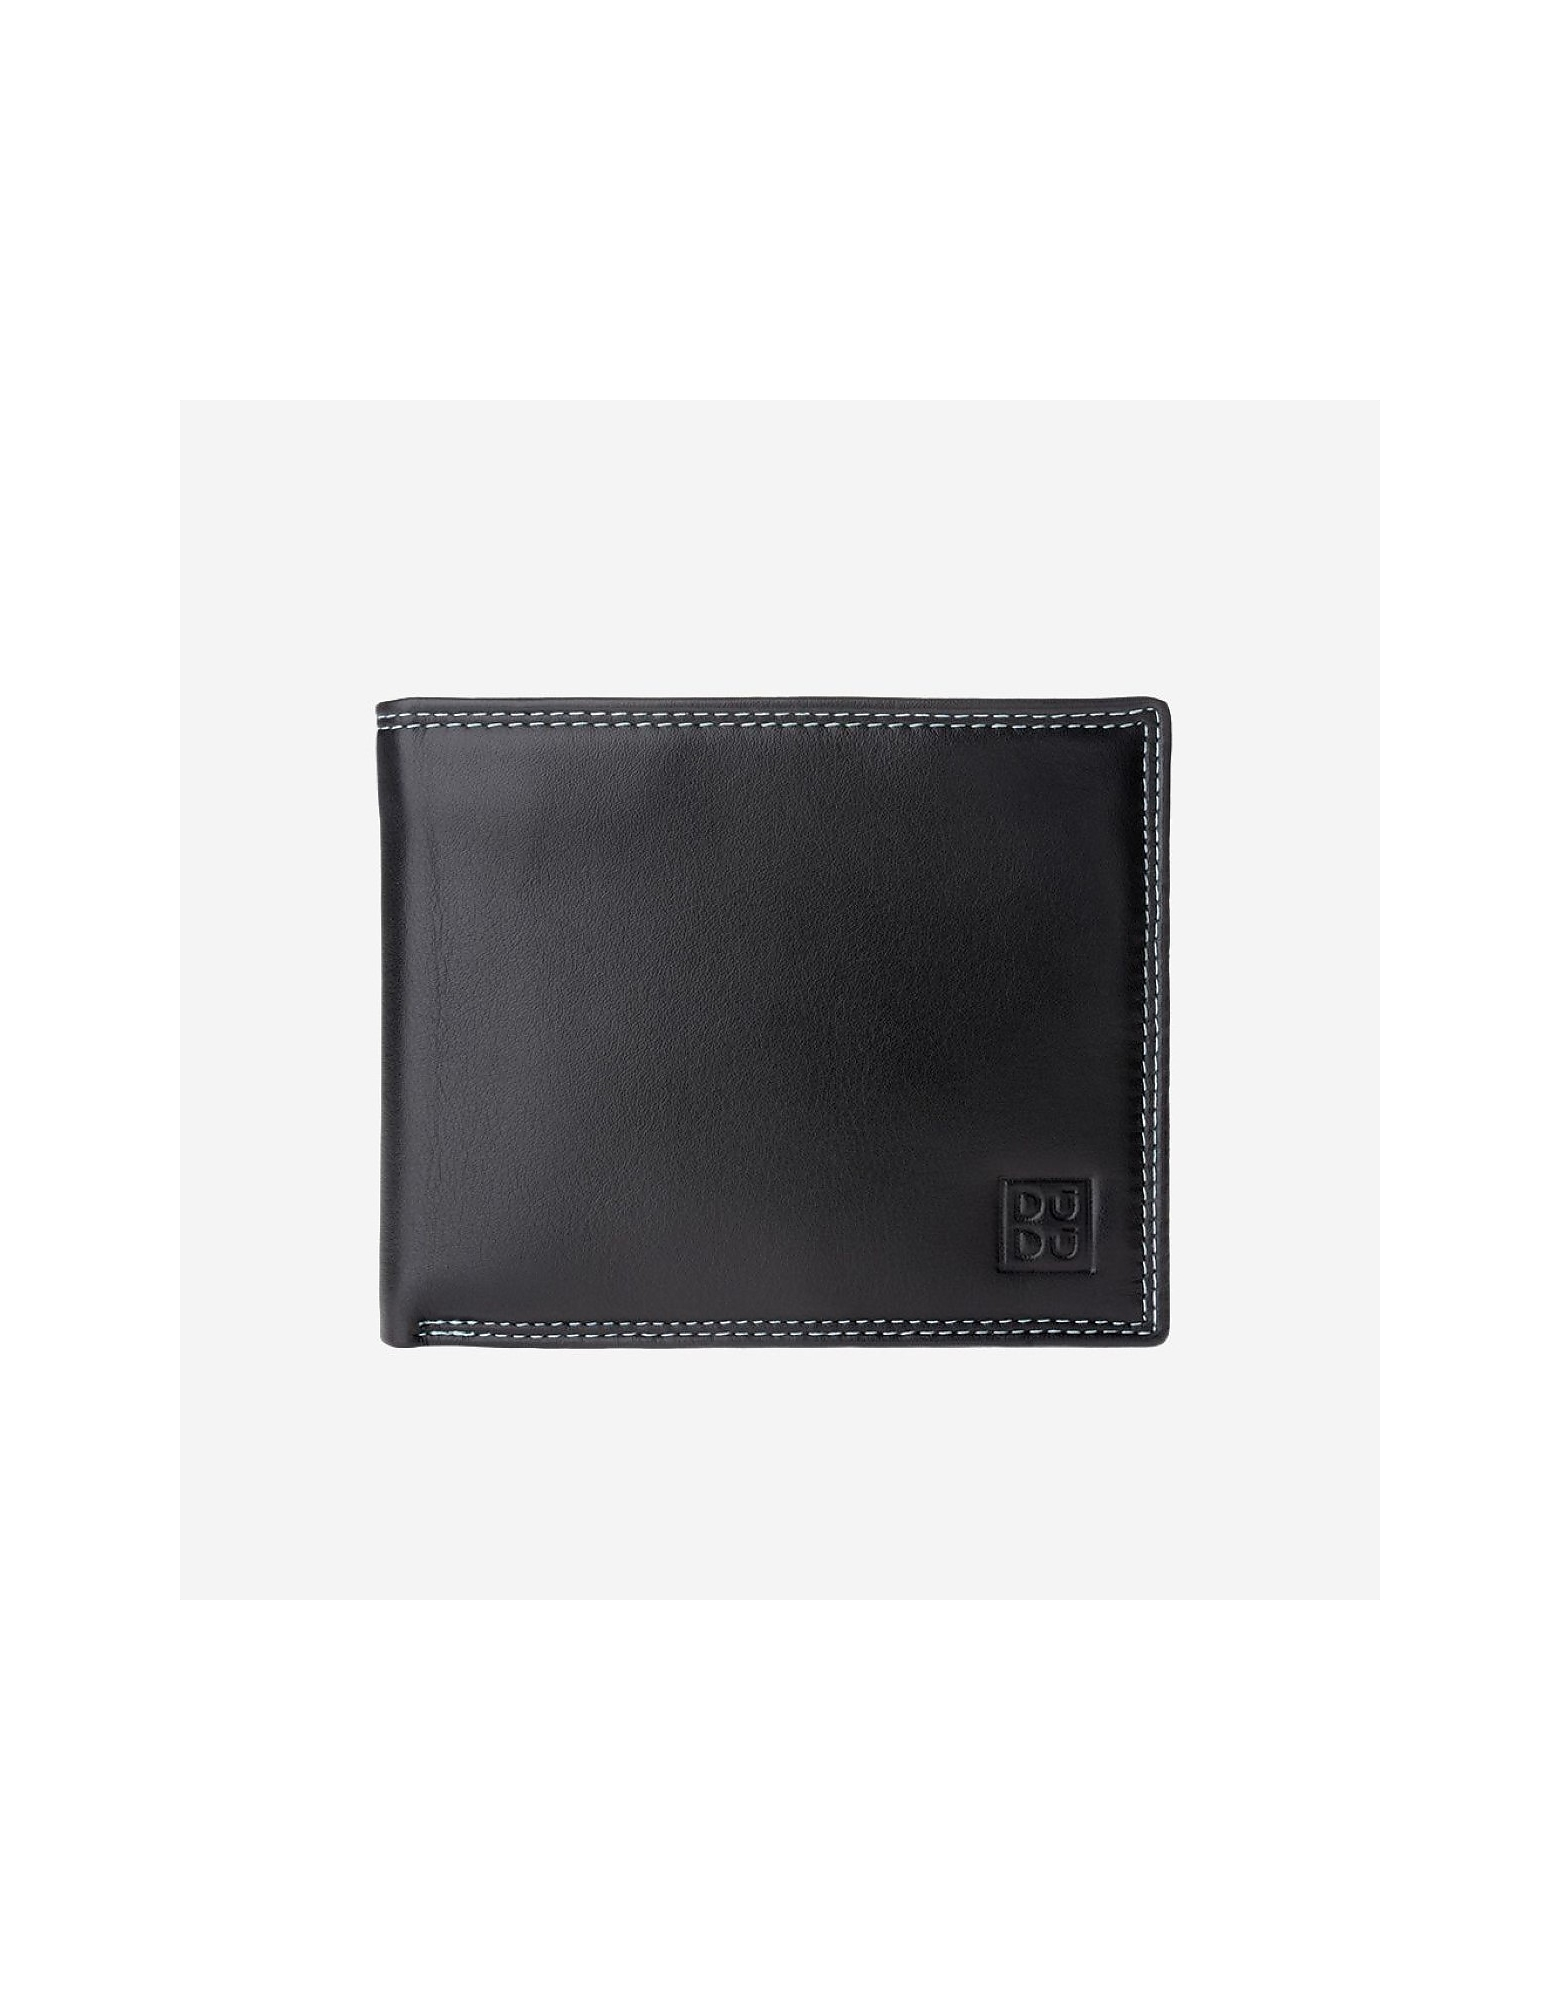 Dudubags Designer Men's Bags, Men's Black Wallet